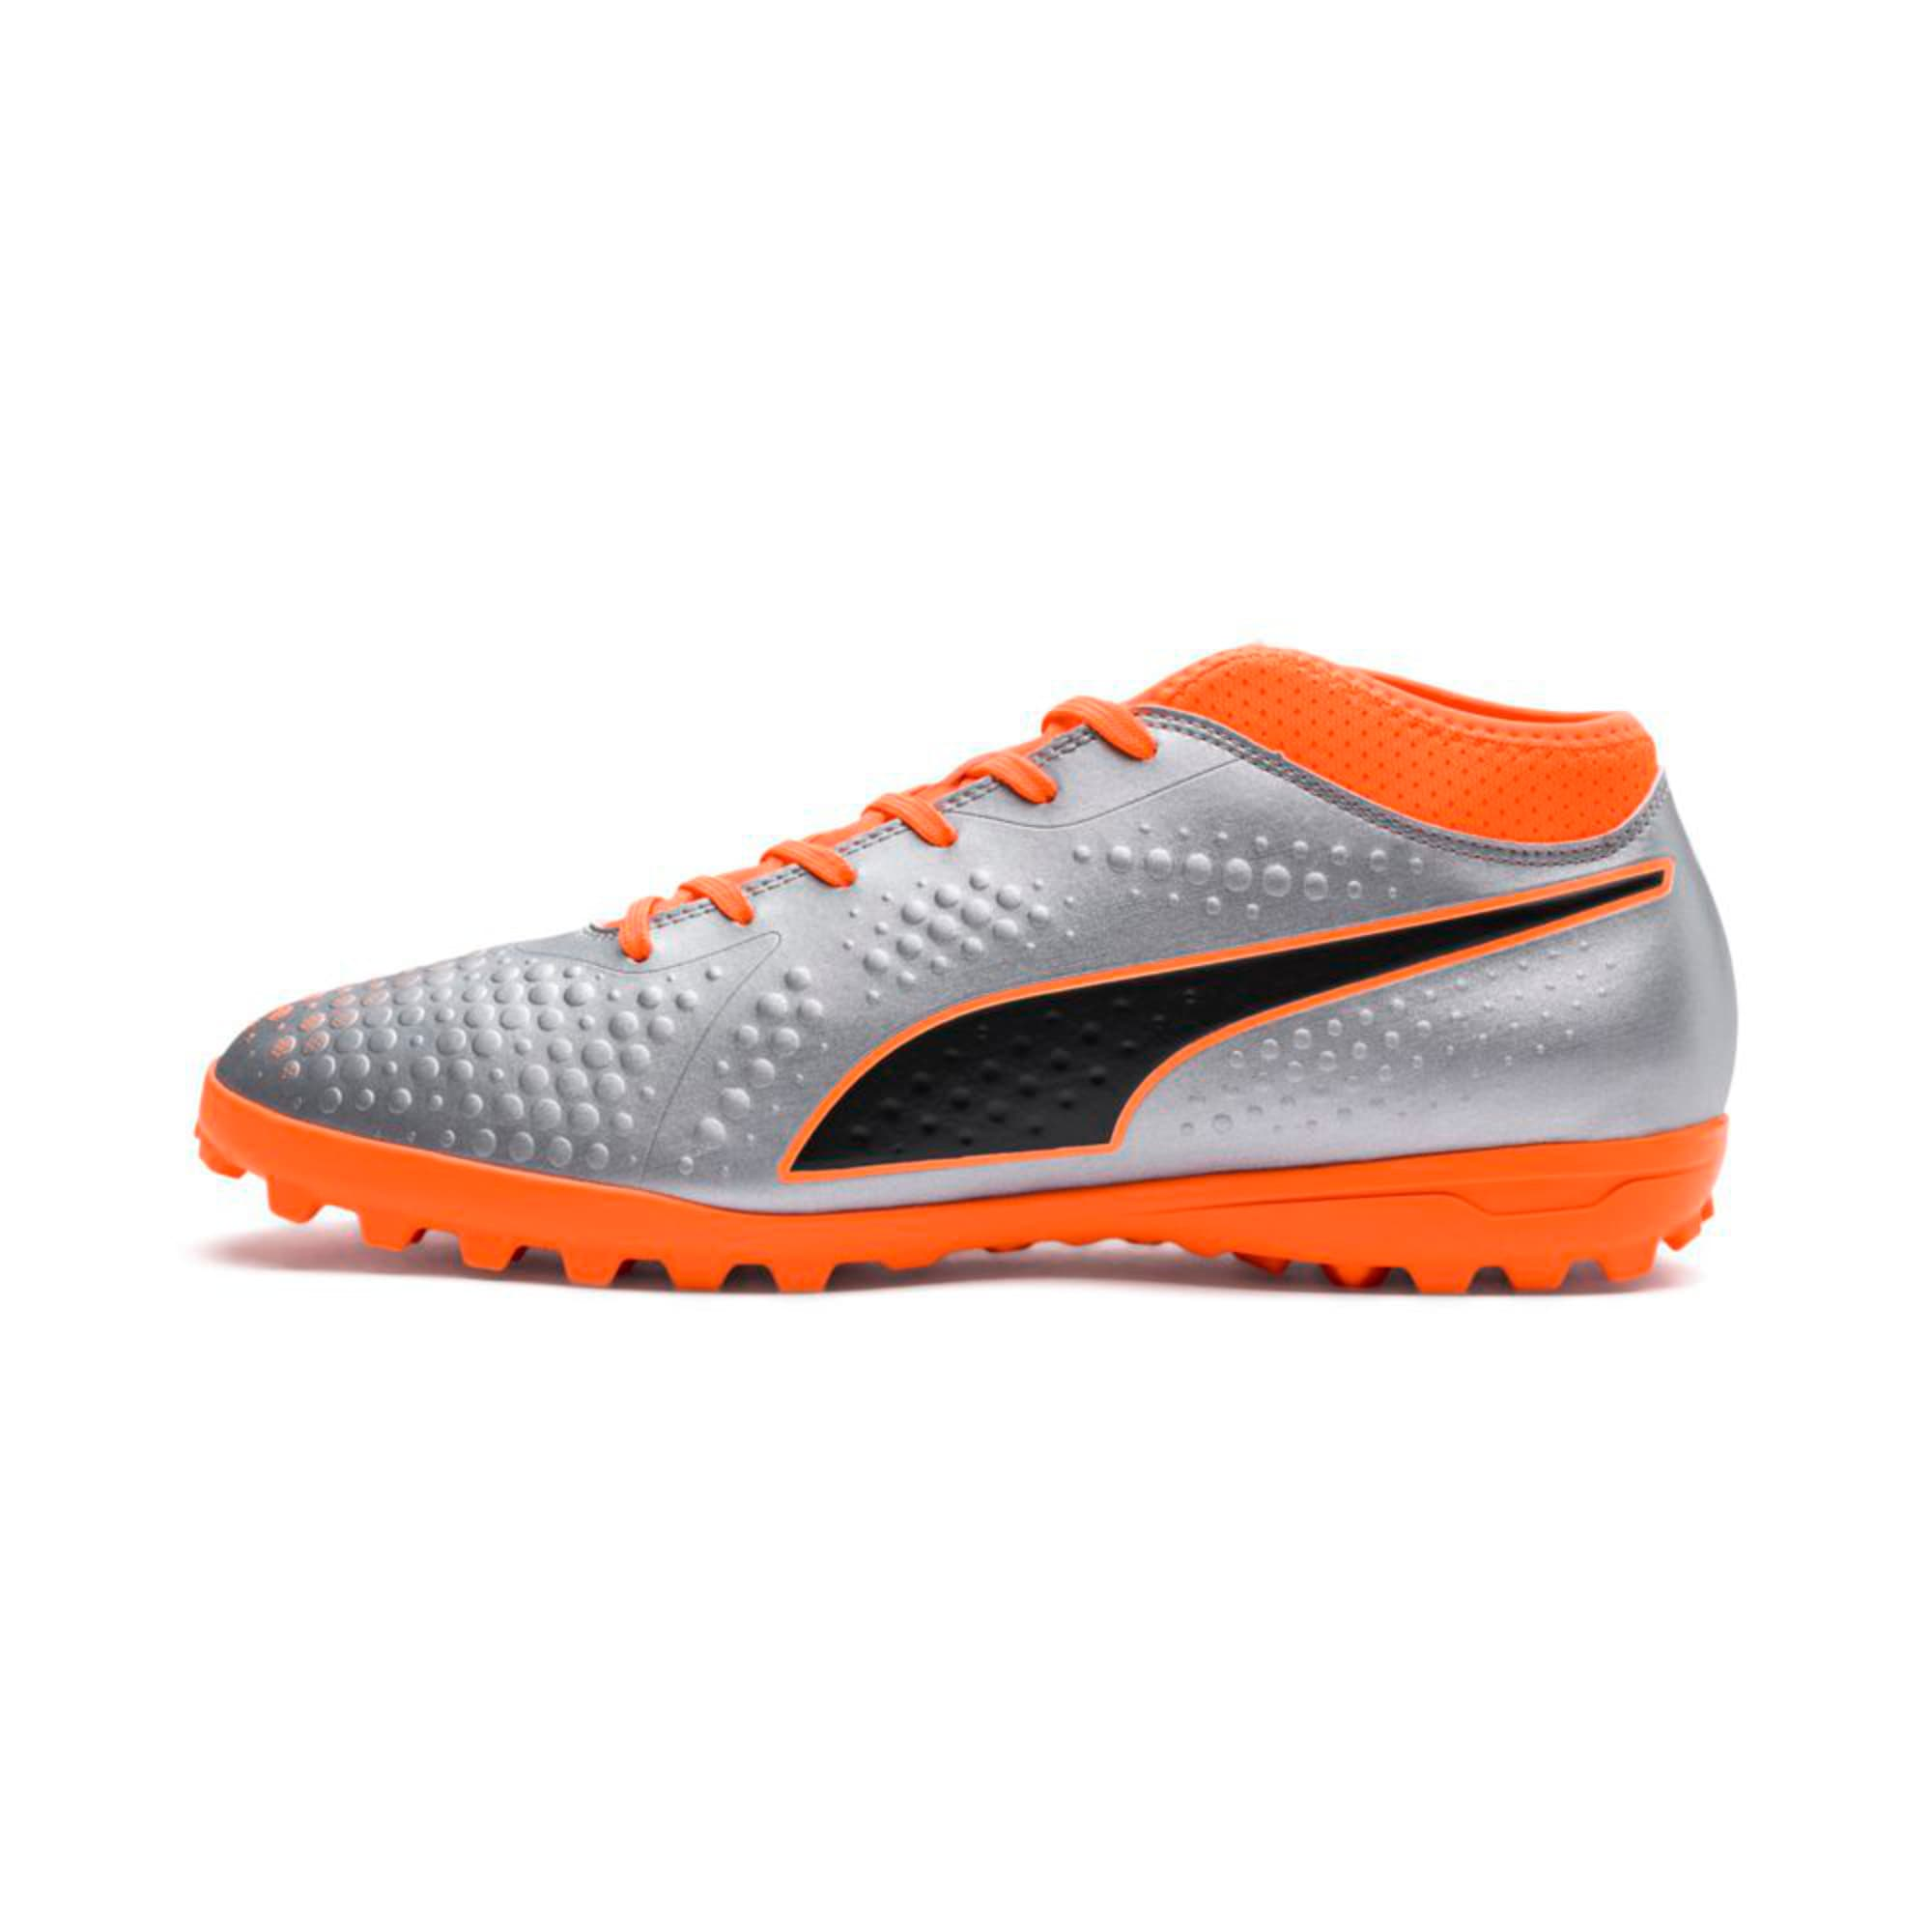 Thumbnail 1 of PUMA ONE 4 Synthetic TT Men's Football Boots, Silver-Orange-Black, medium-IND